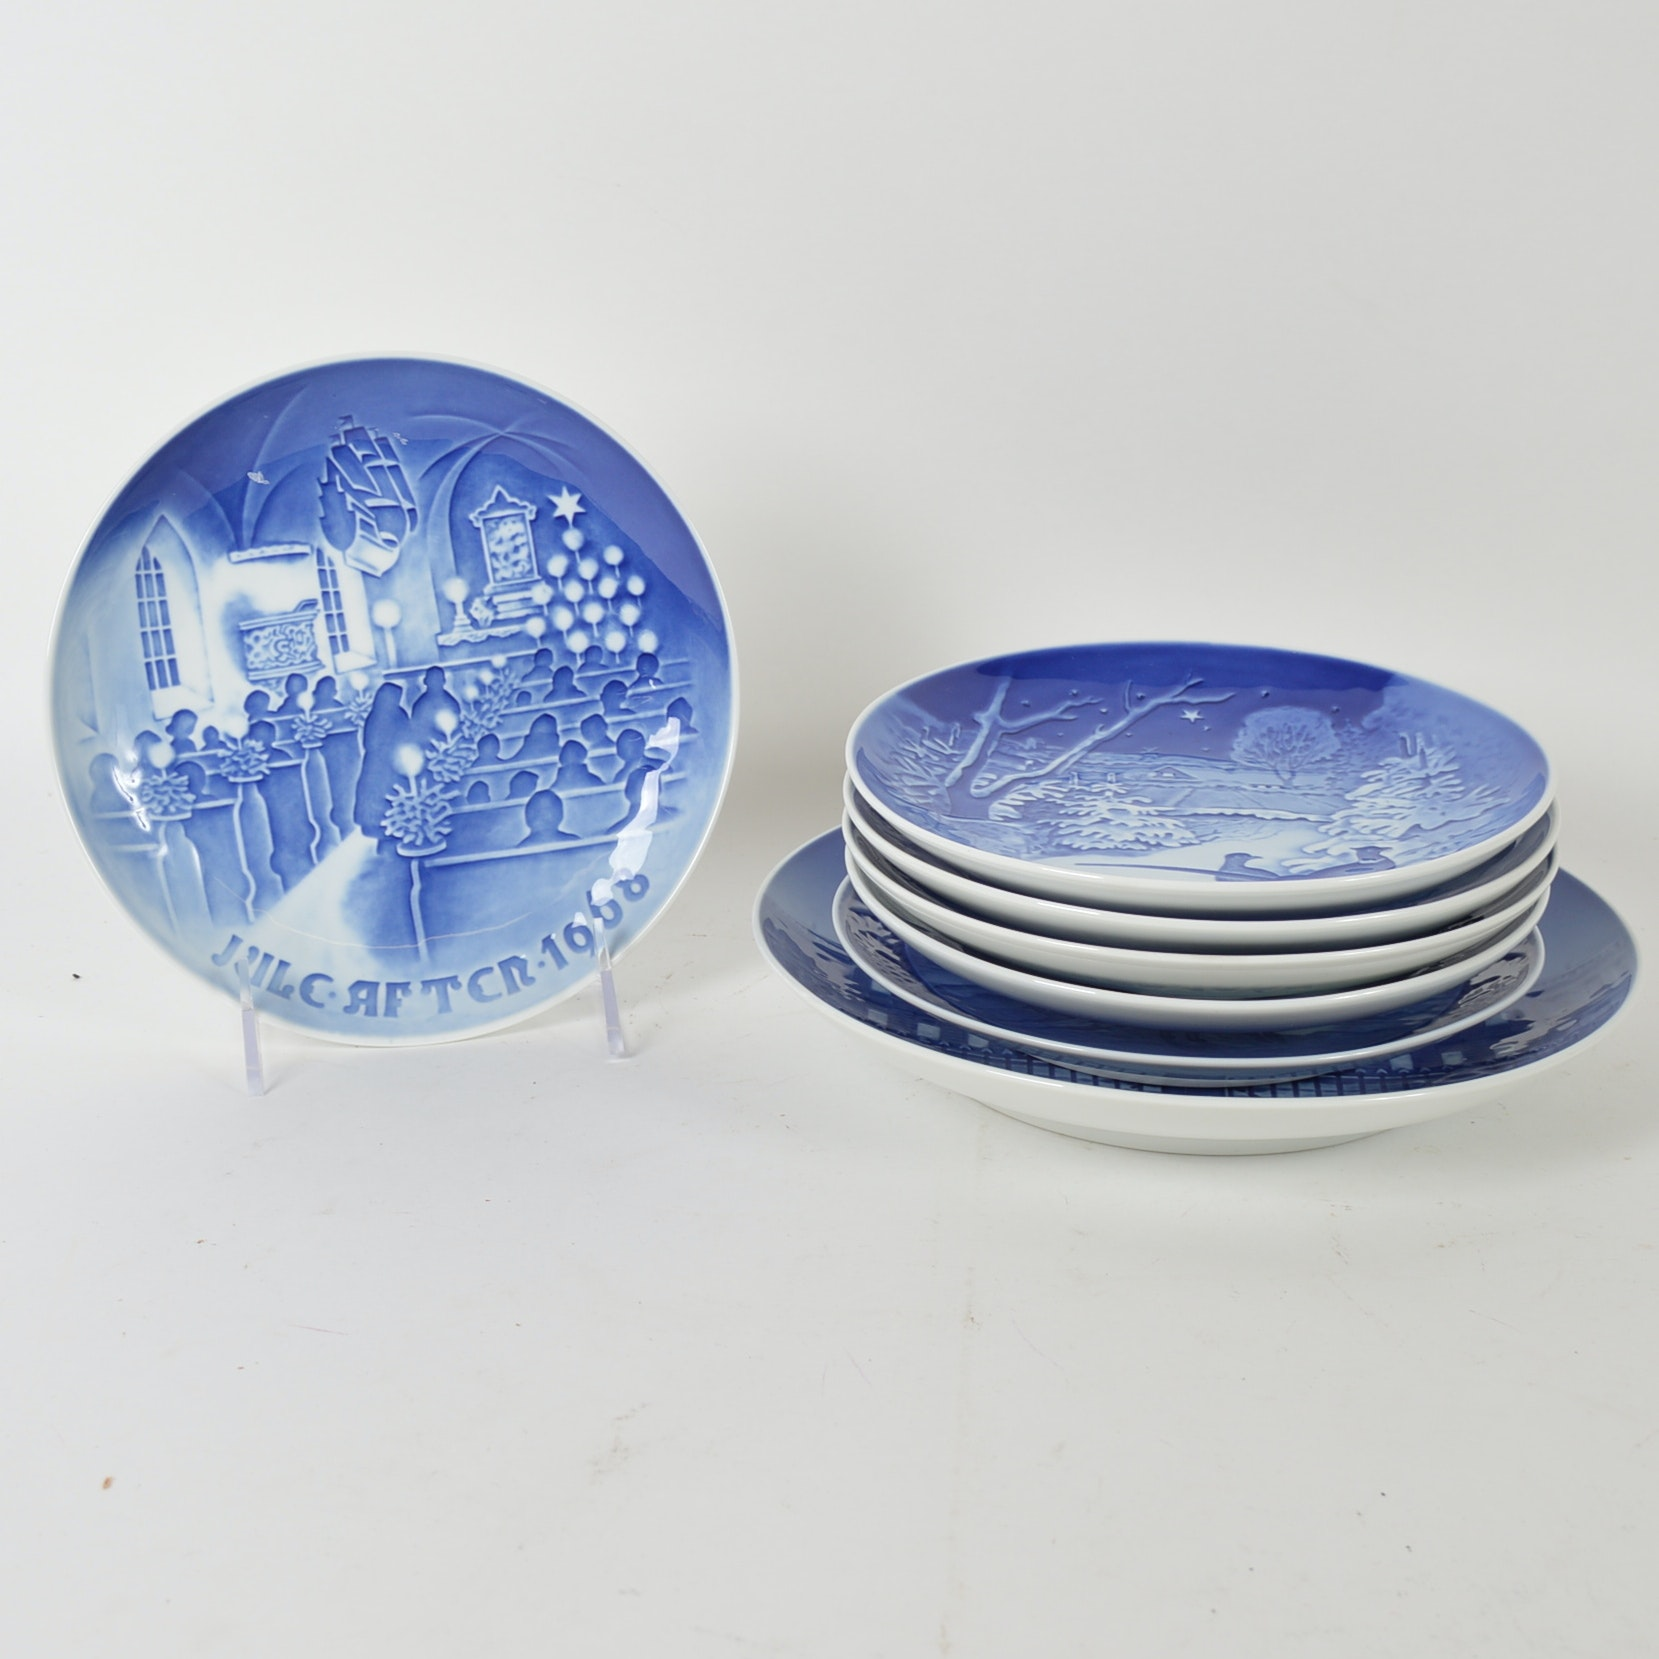 Blue and White Decorative Danish Plates ...  sc 1 st  EBTH.com & Blue and White Decorative Danish Plates : EBTH